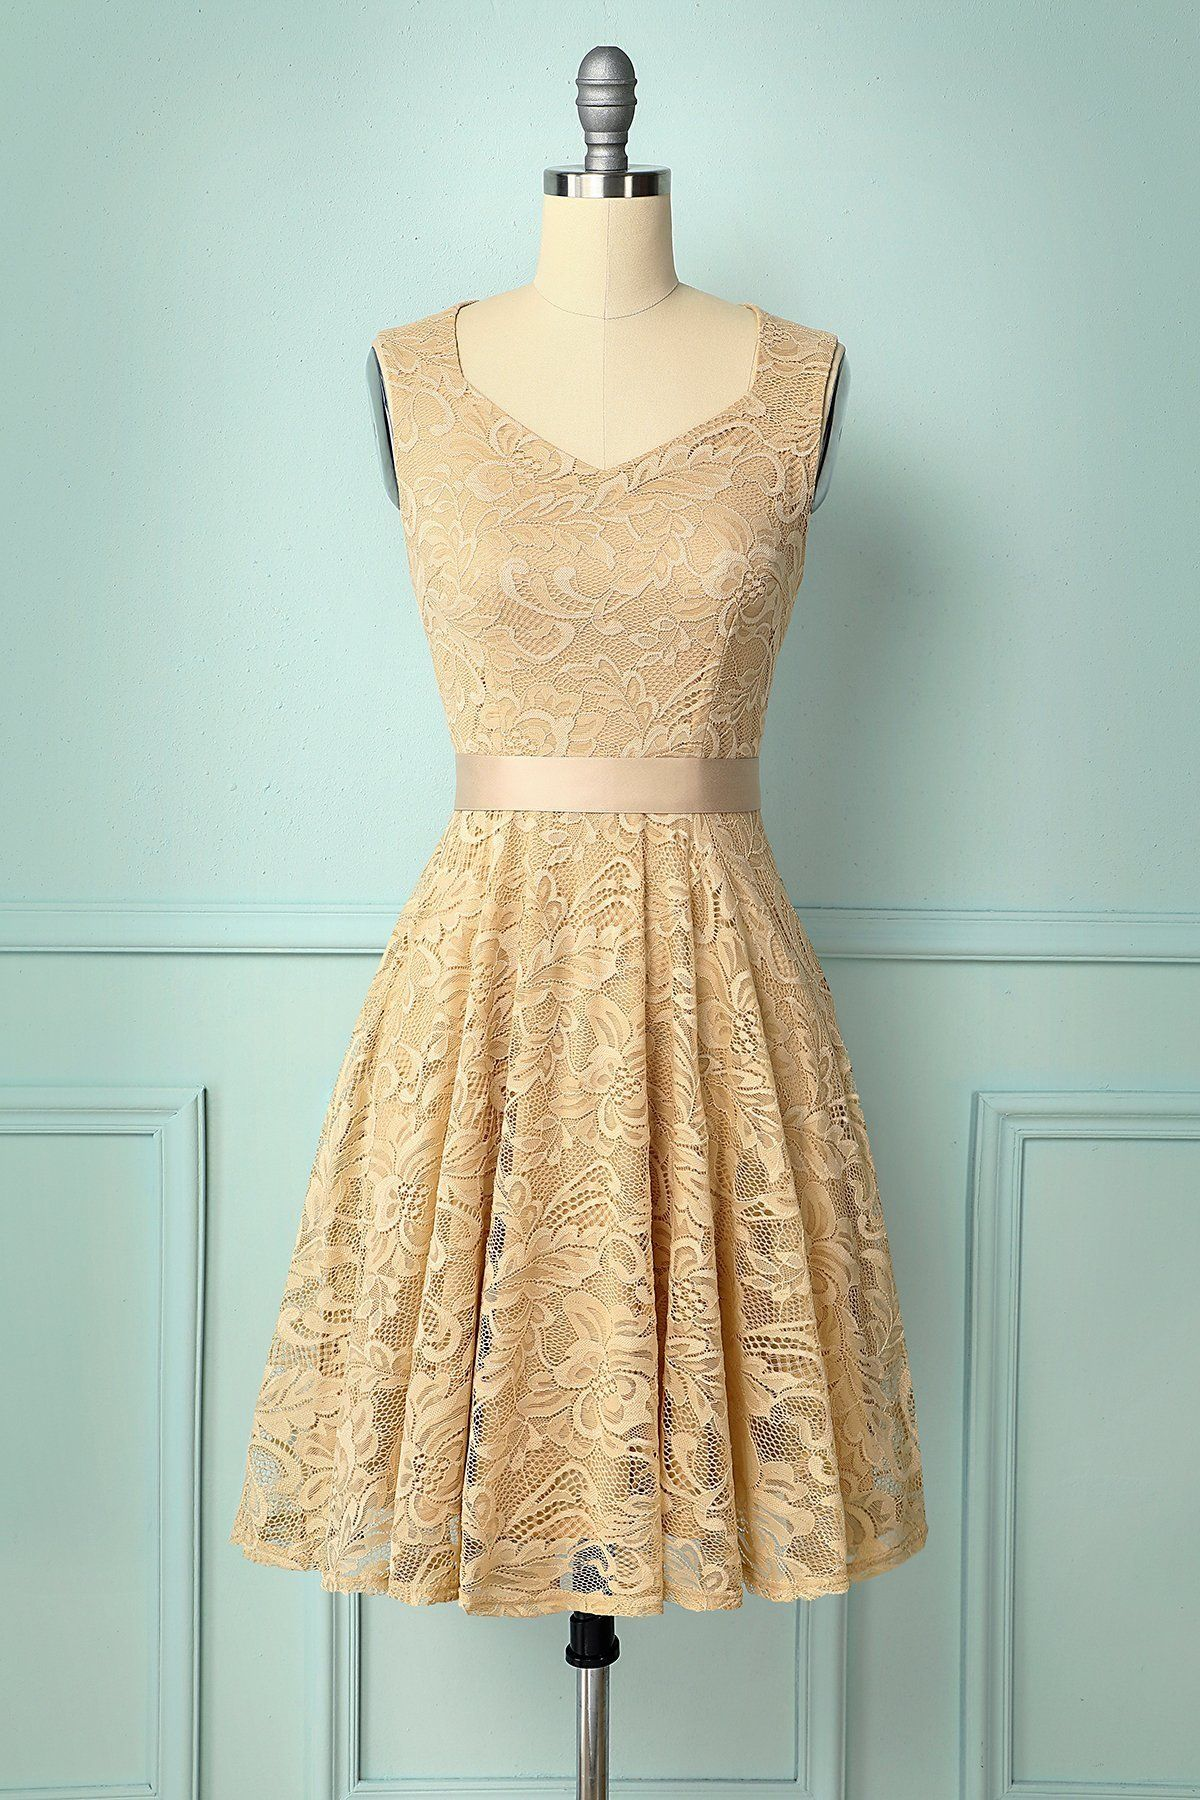 Champagne V Neck Lace Lace Dress Vintage Short Gold Bridesmaid Dresses Lace Dress With Sleeves [ 1800 x 1200 Pixel ]